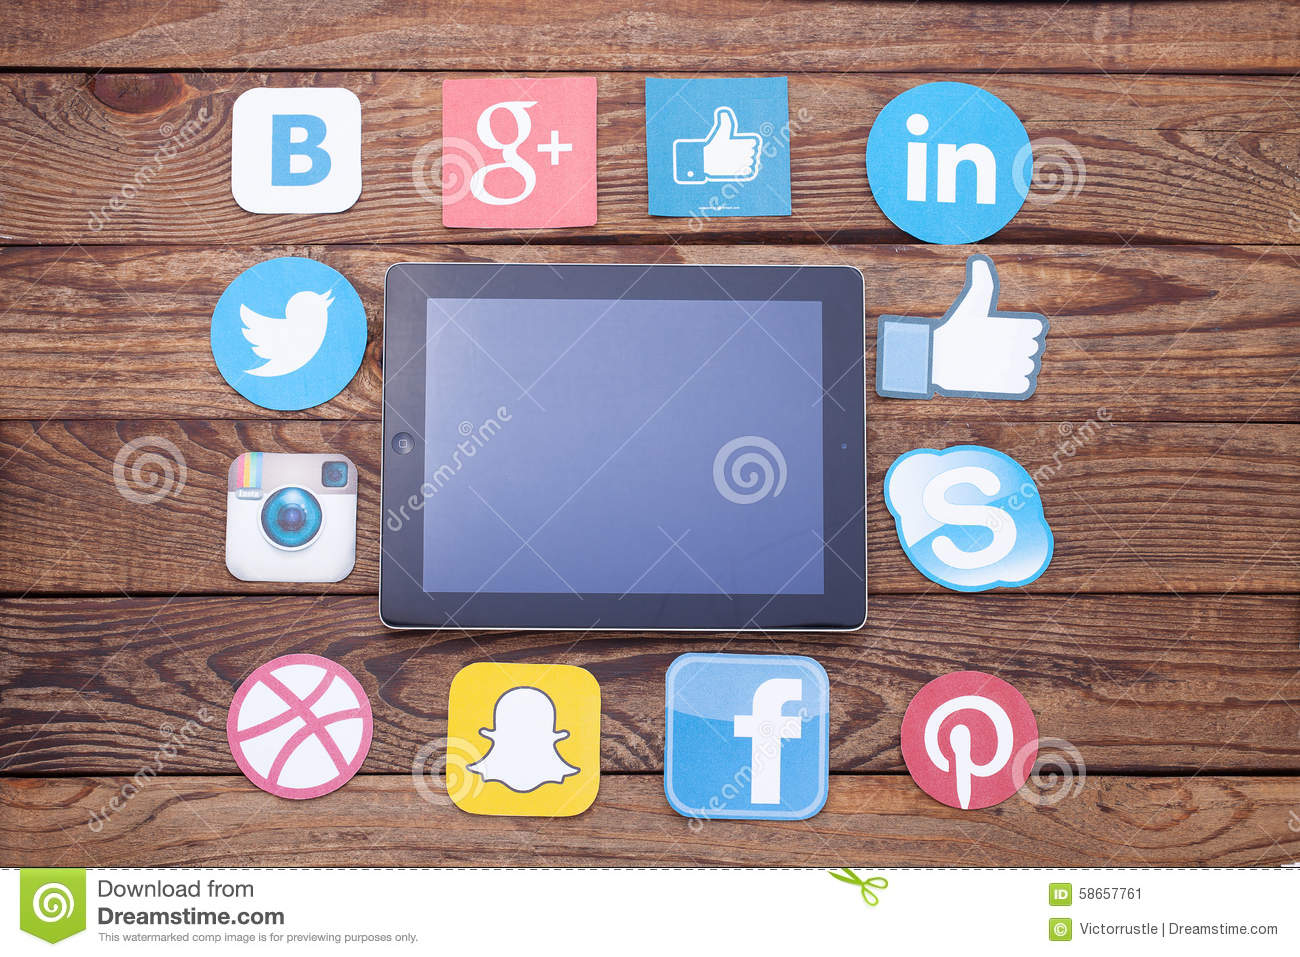 KIEV, UKRAINE - AUGUST 22, 2015: Famous social media icons such as: Facebook, Twitter, Blogger, Linkedin, Google Plus, Instagram